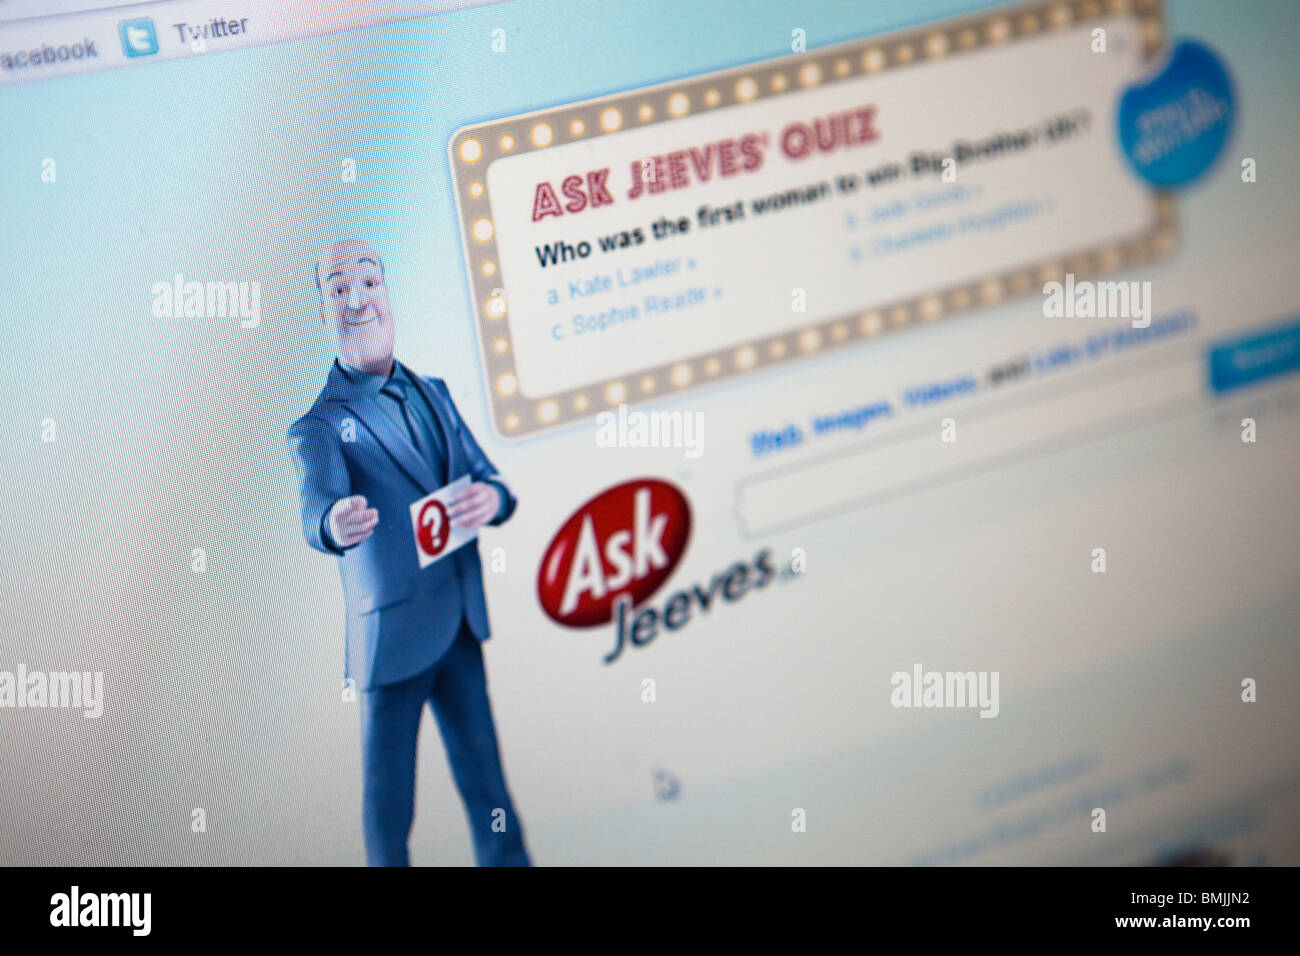 Close up of a computer monitor / screen showing the Ask Jeeves search engine website - Stock Image